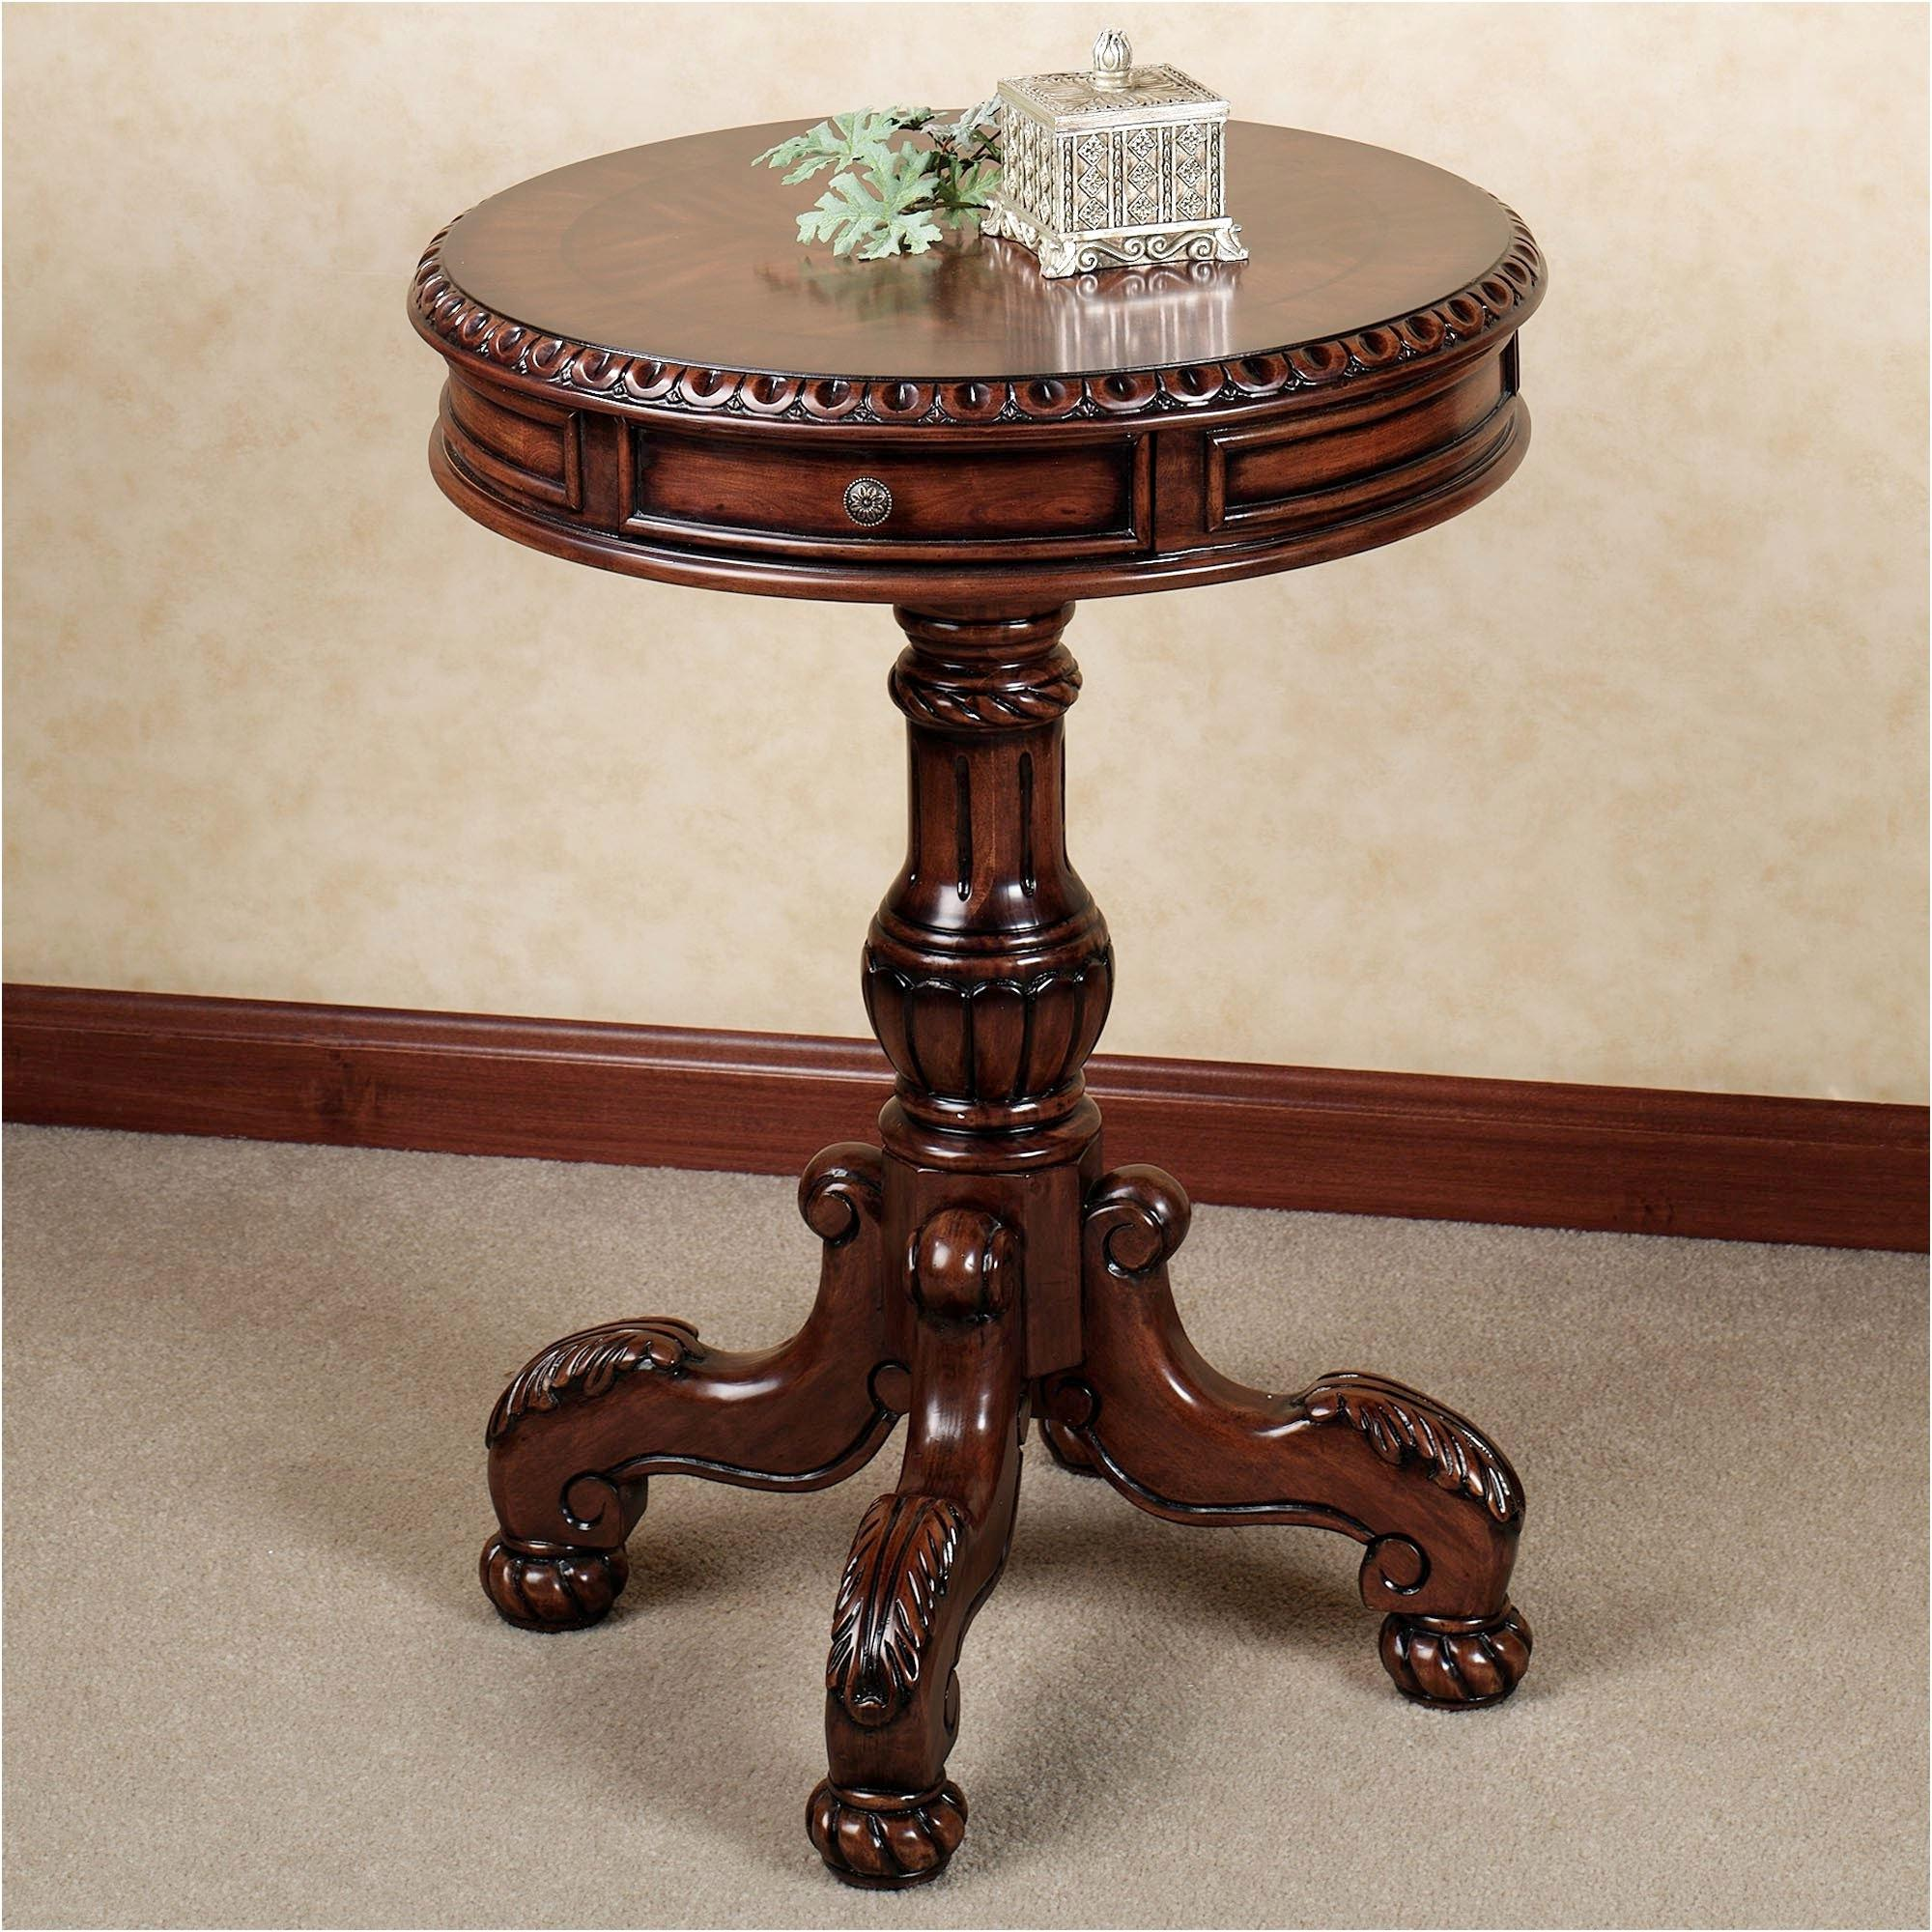 best exquisite round accent table discover dartmoor design antique glass tea target kitchen island brown linen tablecloth large garden umbrellas black distressed side garage